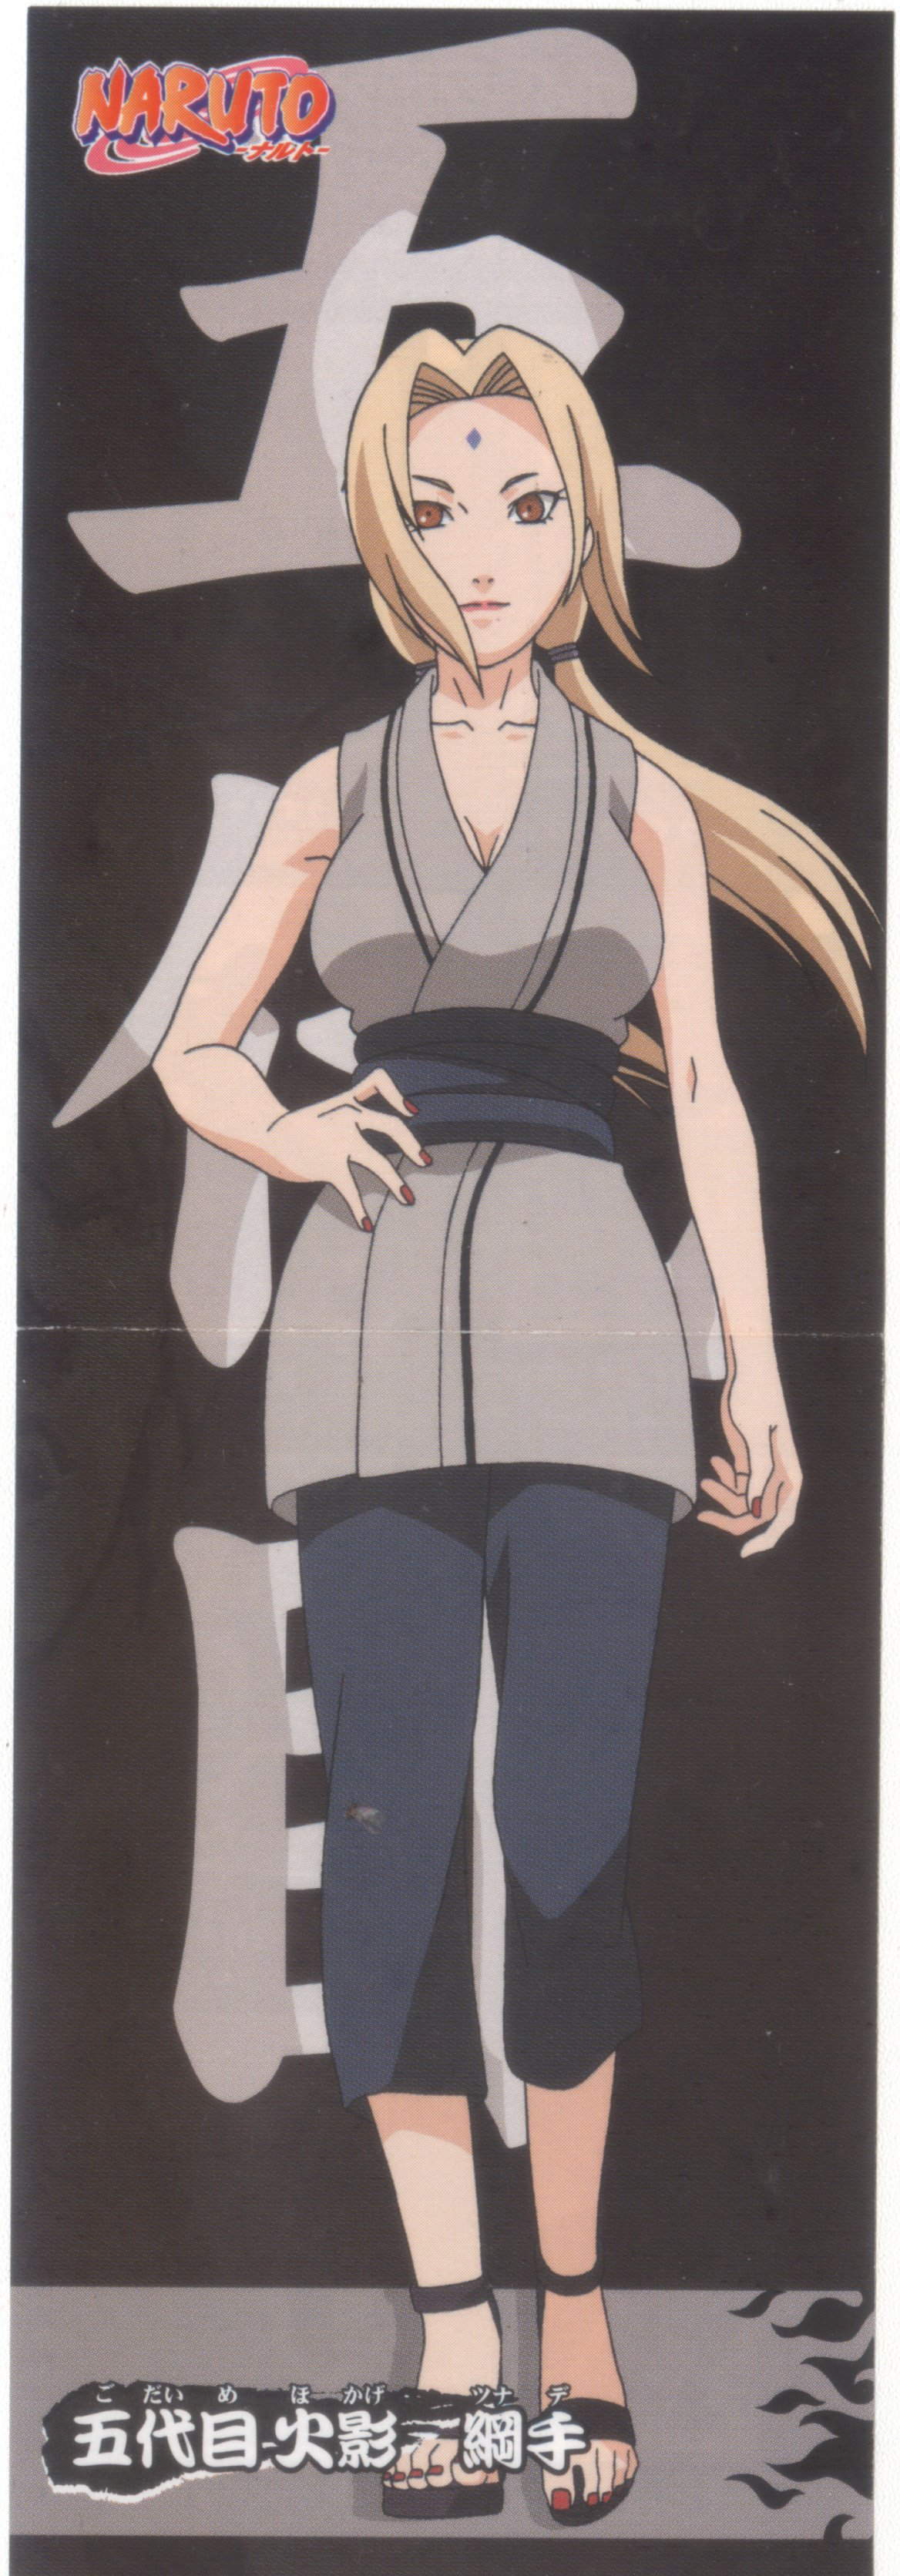 Iphone 5 Theme Wallpaper Tsunade Naruto Zerochan Anime Image Board